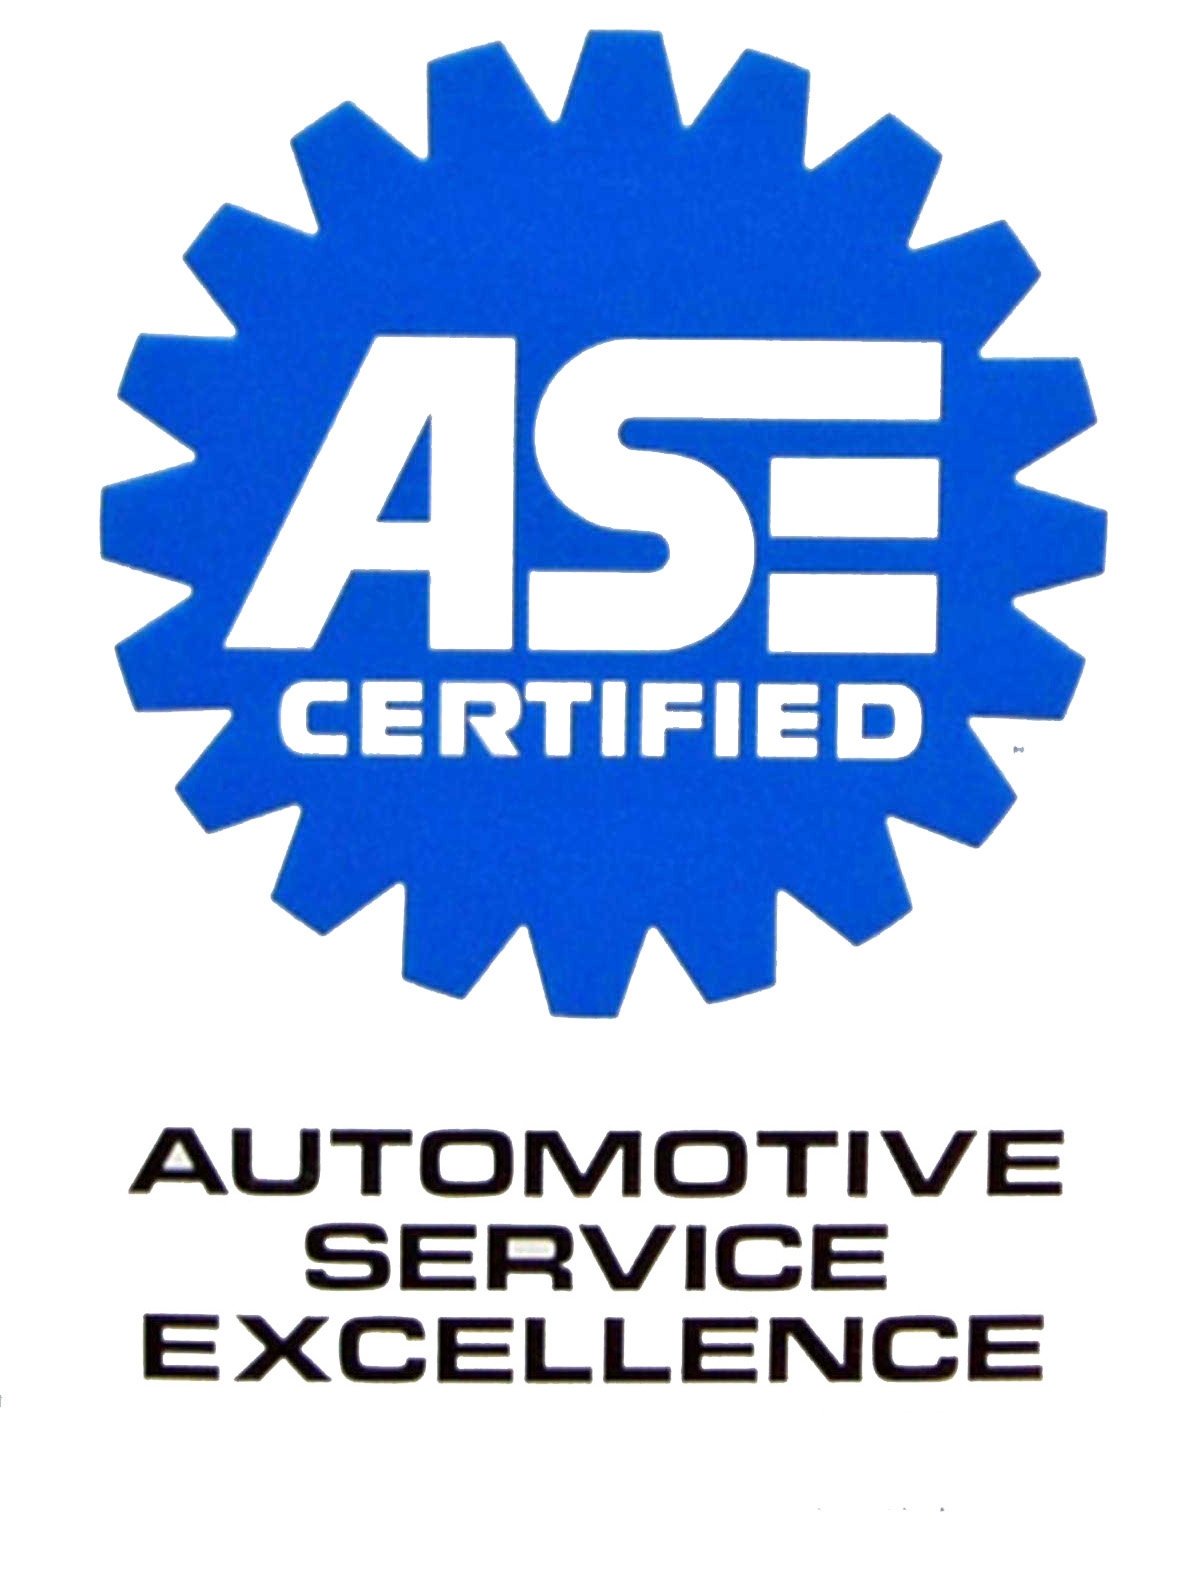 Servies Chester Maryland Mechanic All In Automotive